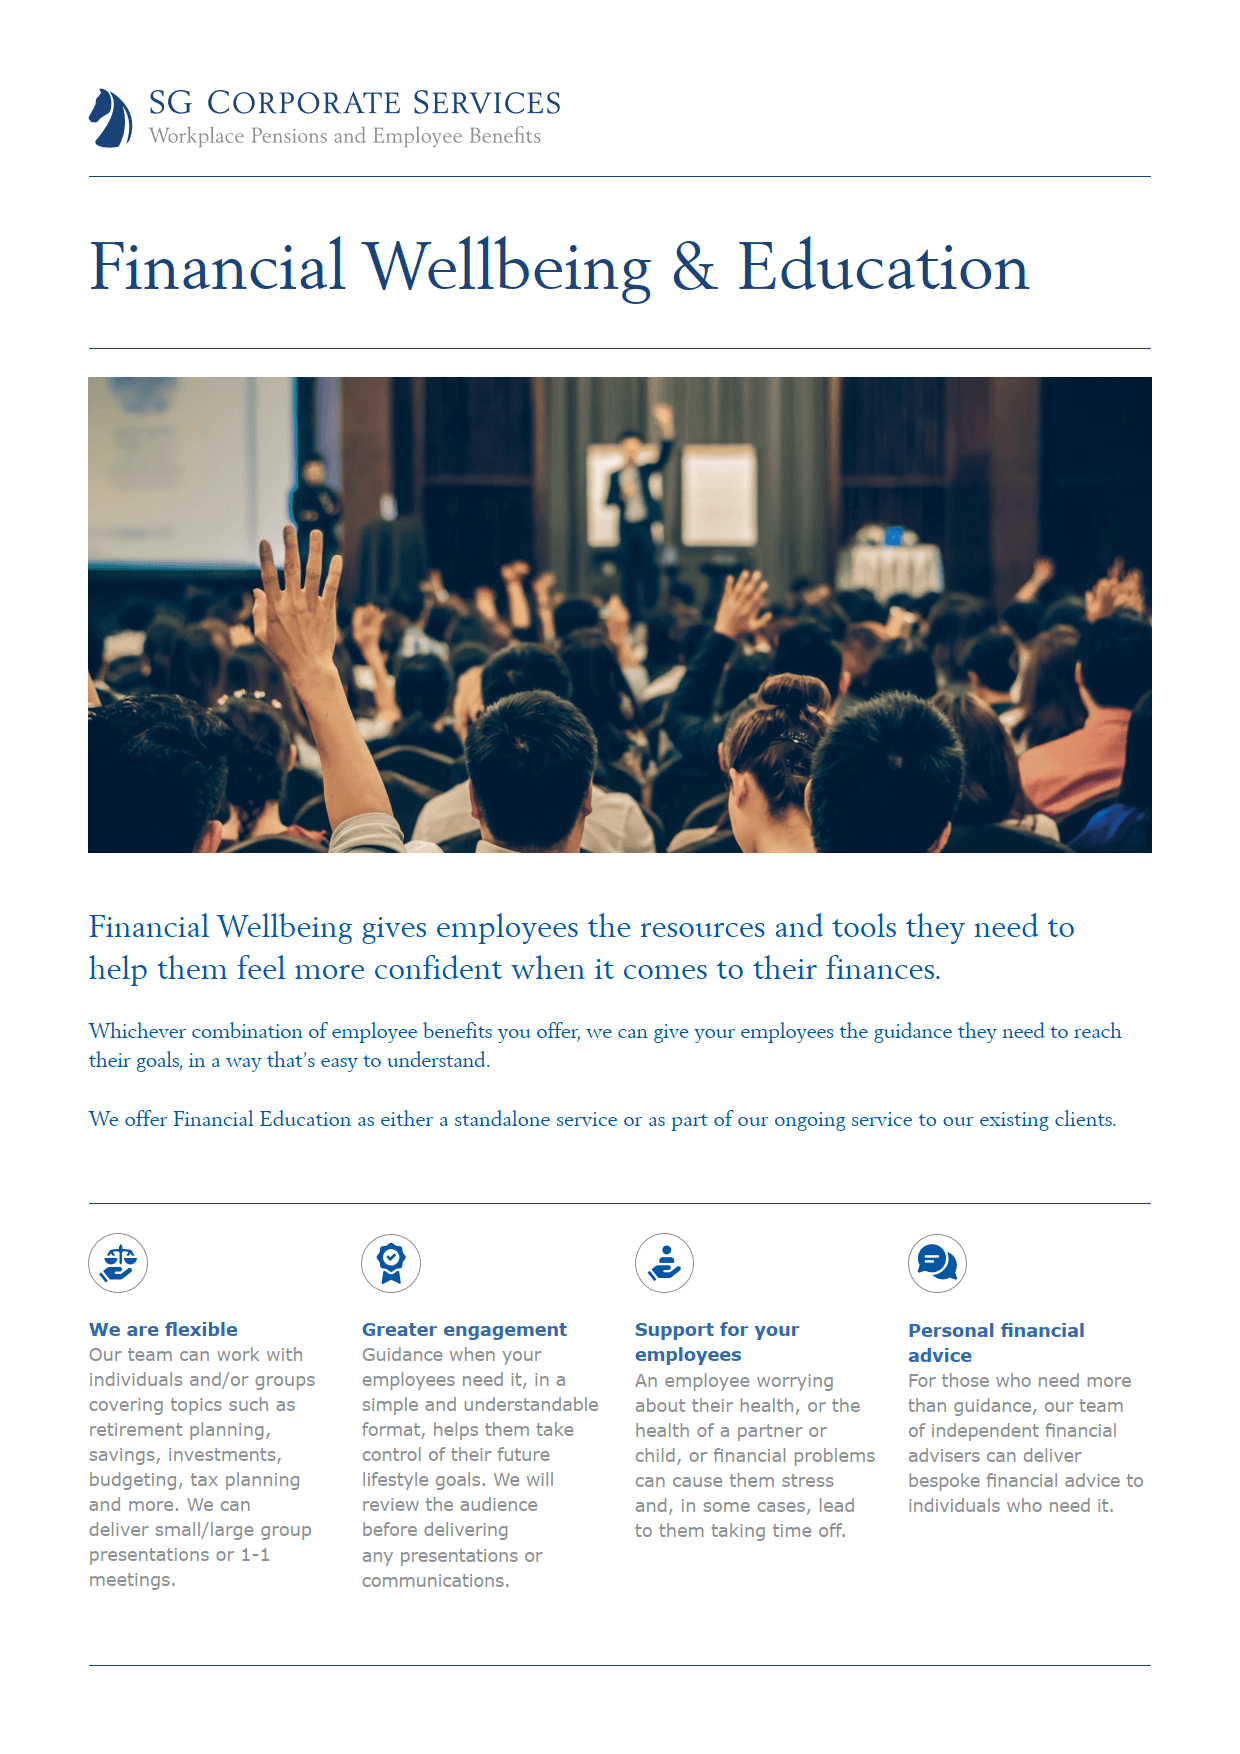 Product Guide - Financial Wellbeing and Education